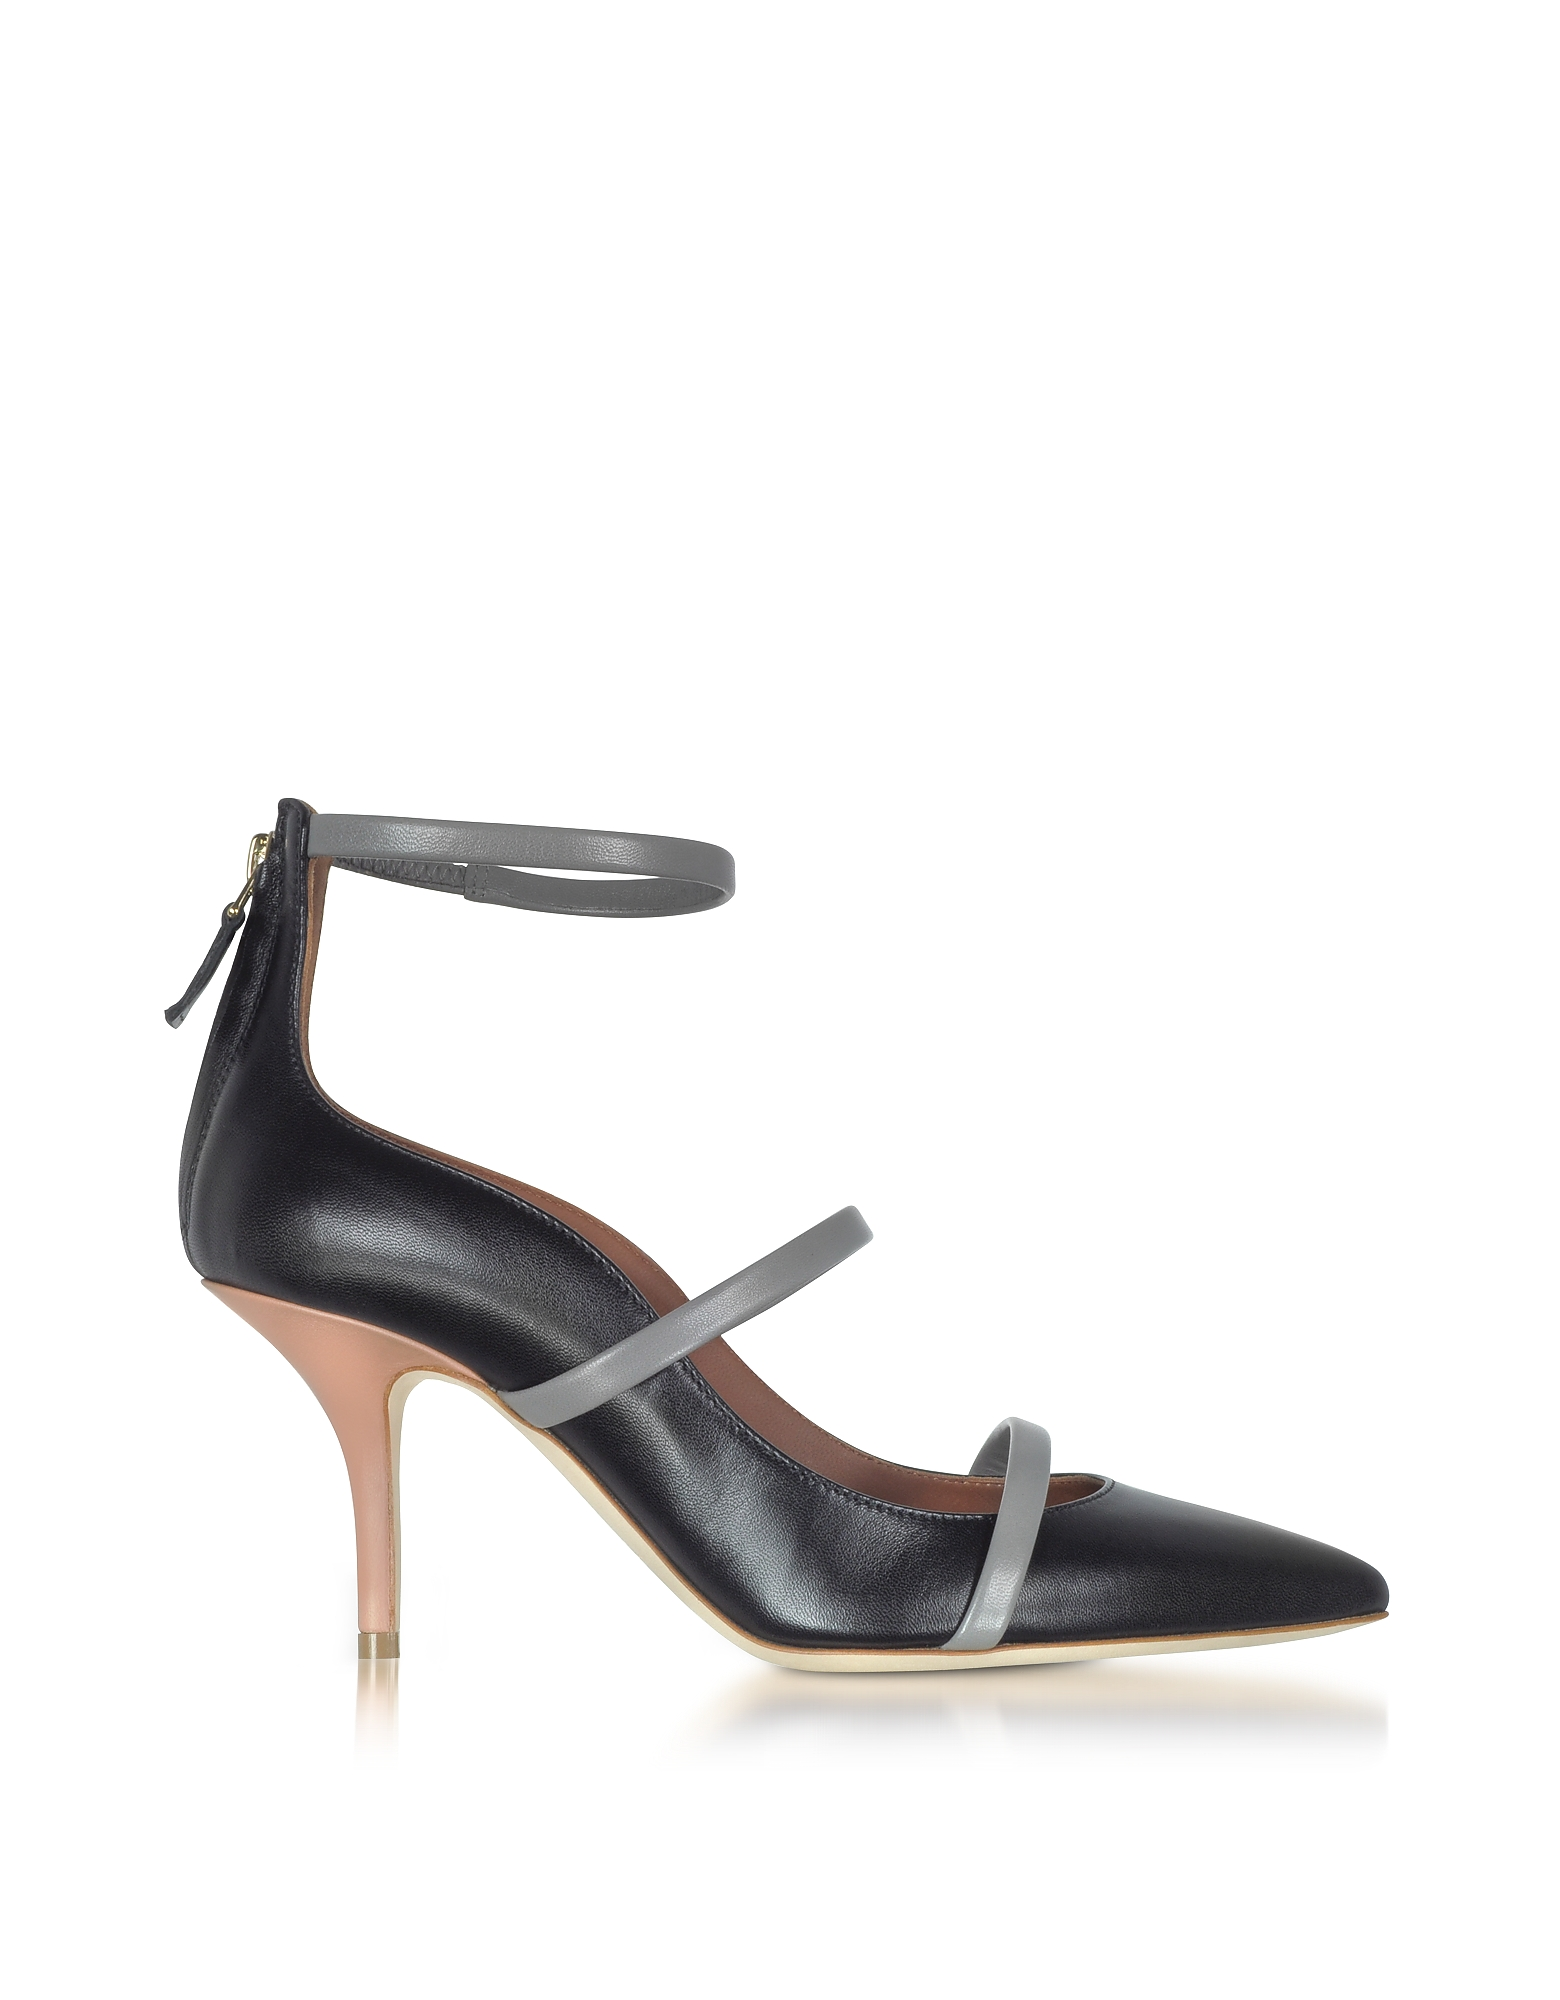 Malone Souliers Shoes, Color Block Nappa Leather Robyn Pumps